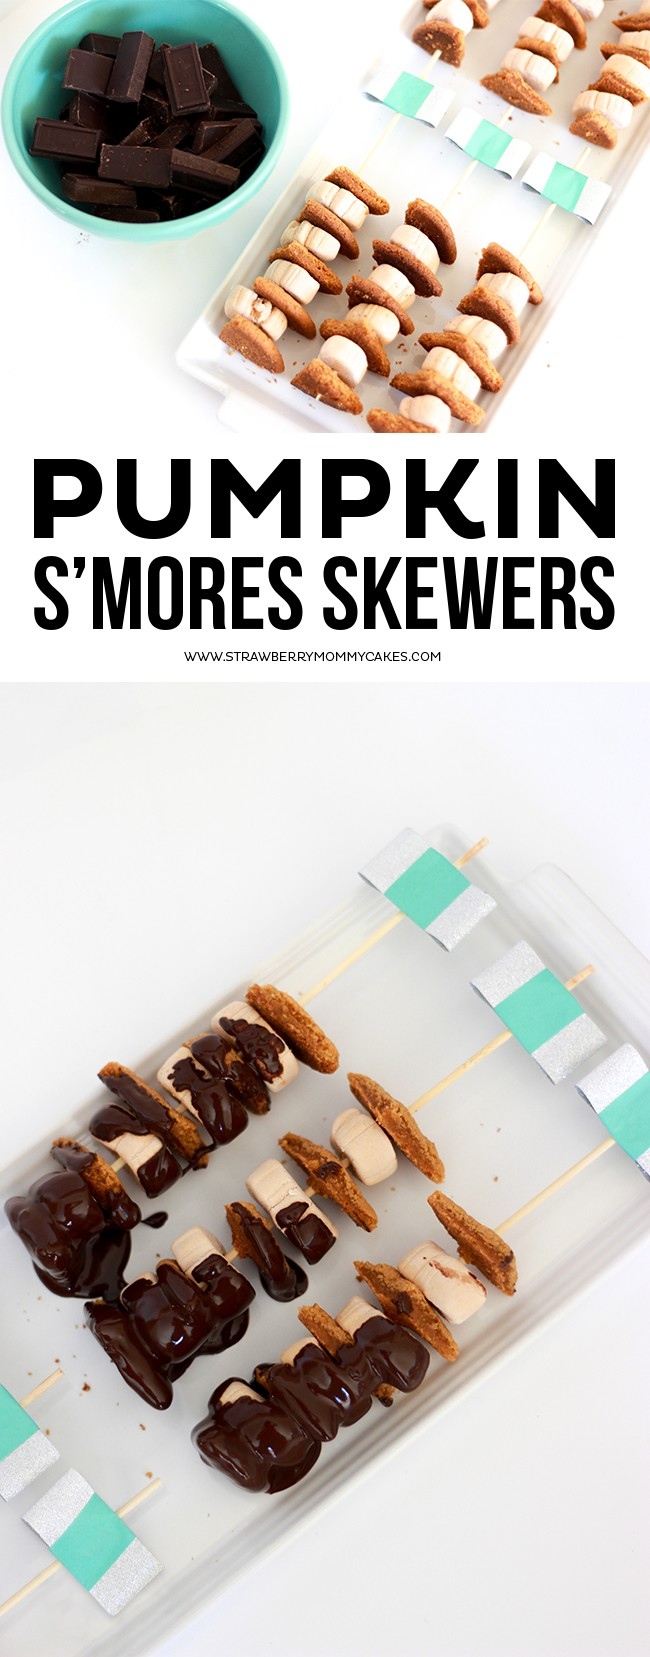 Celebrate the Holidays with Pumpkin S'mores Skewers